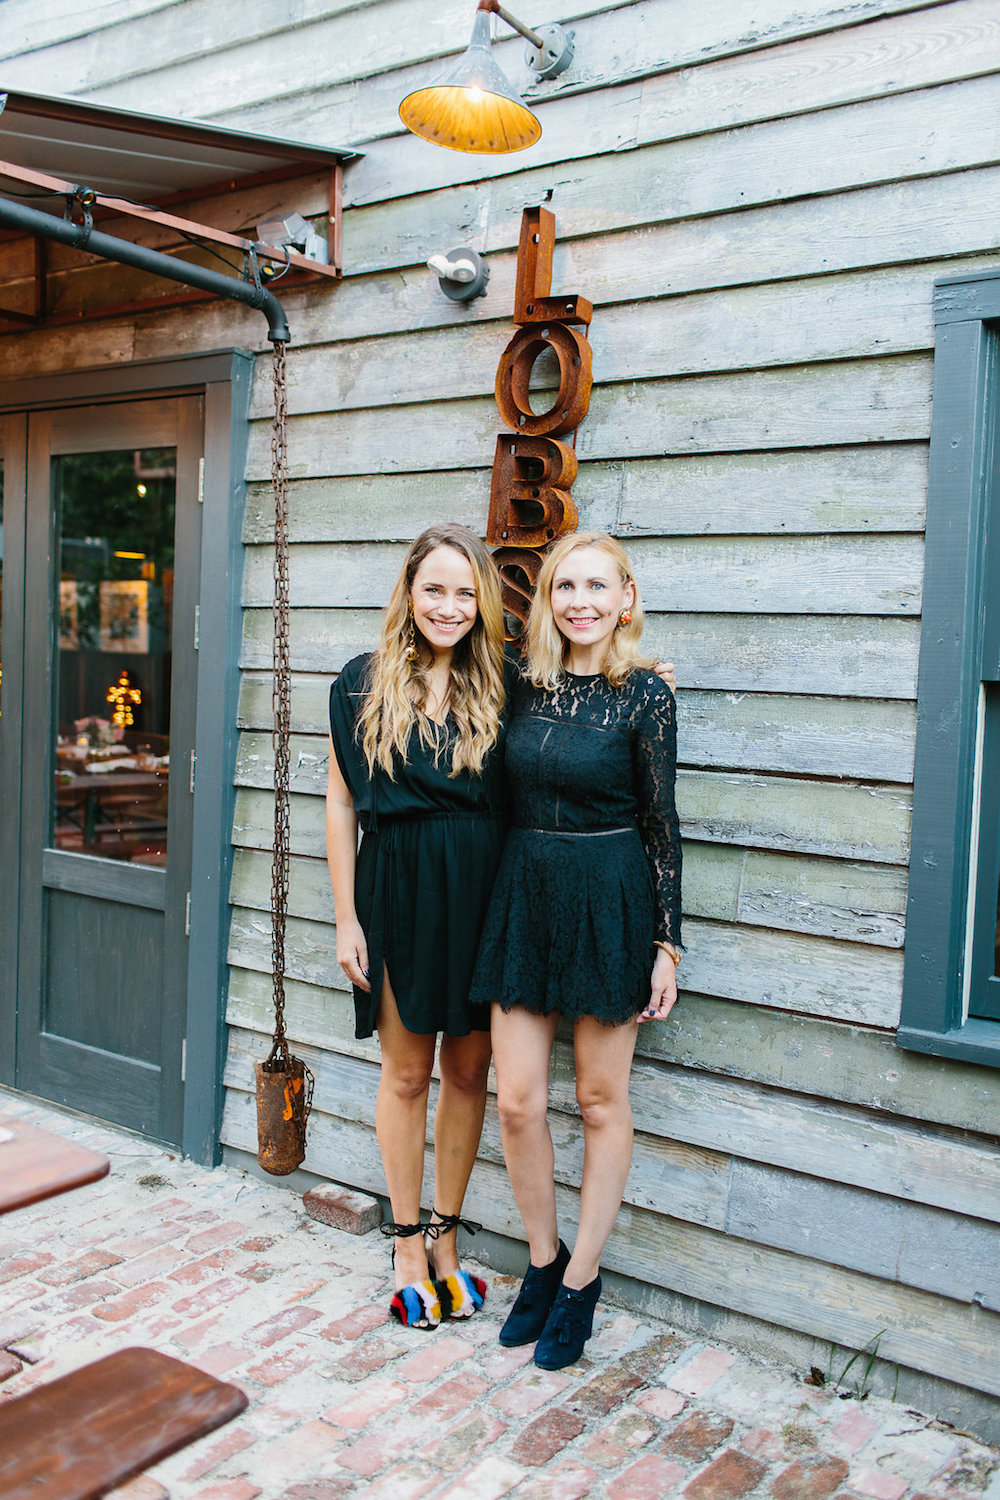 Grace Atwood + Deirdre Zahl Birthday Party - Leon's Oyster Shed; Charleston, South Carolina